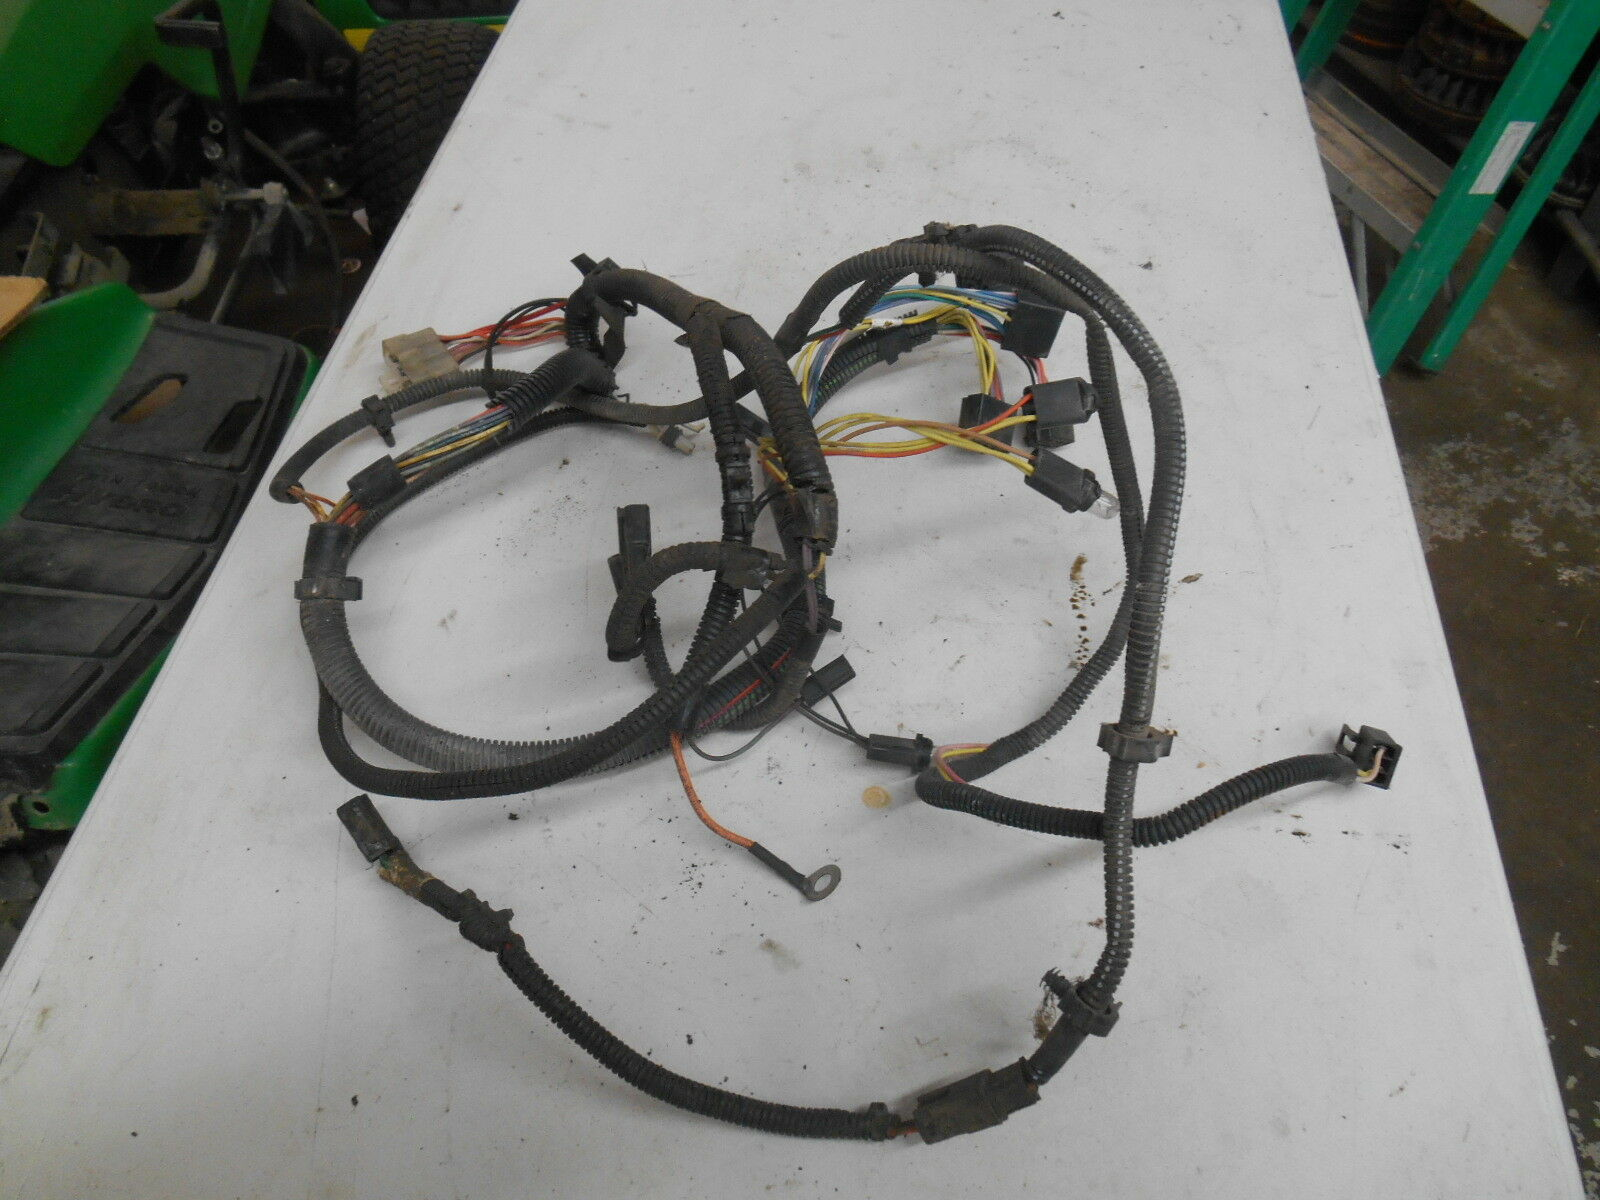 John Deere Gt235 Lawn Garden Tractor Wirring Harness Am123240 La130 Wiring 1 Of 1only Available